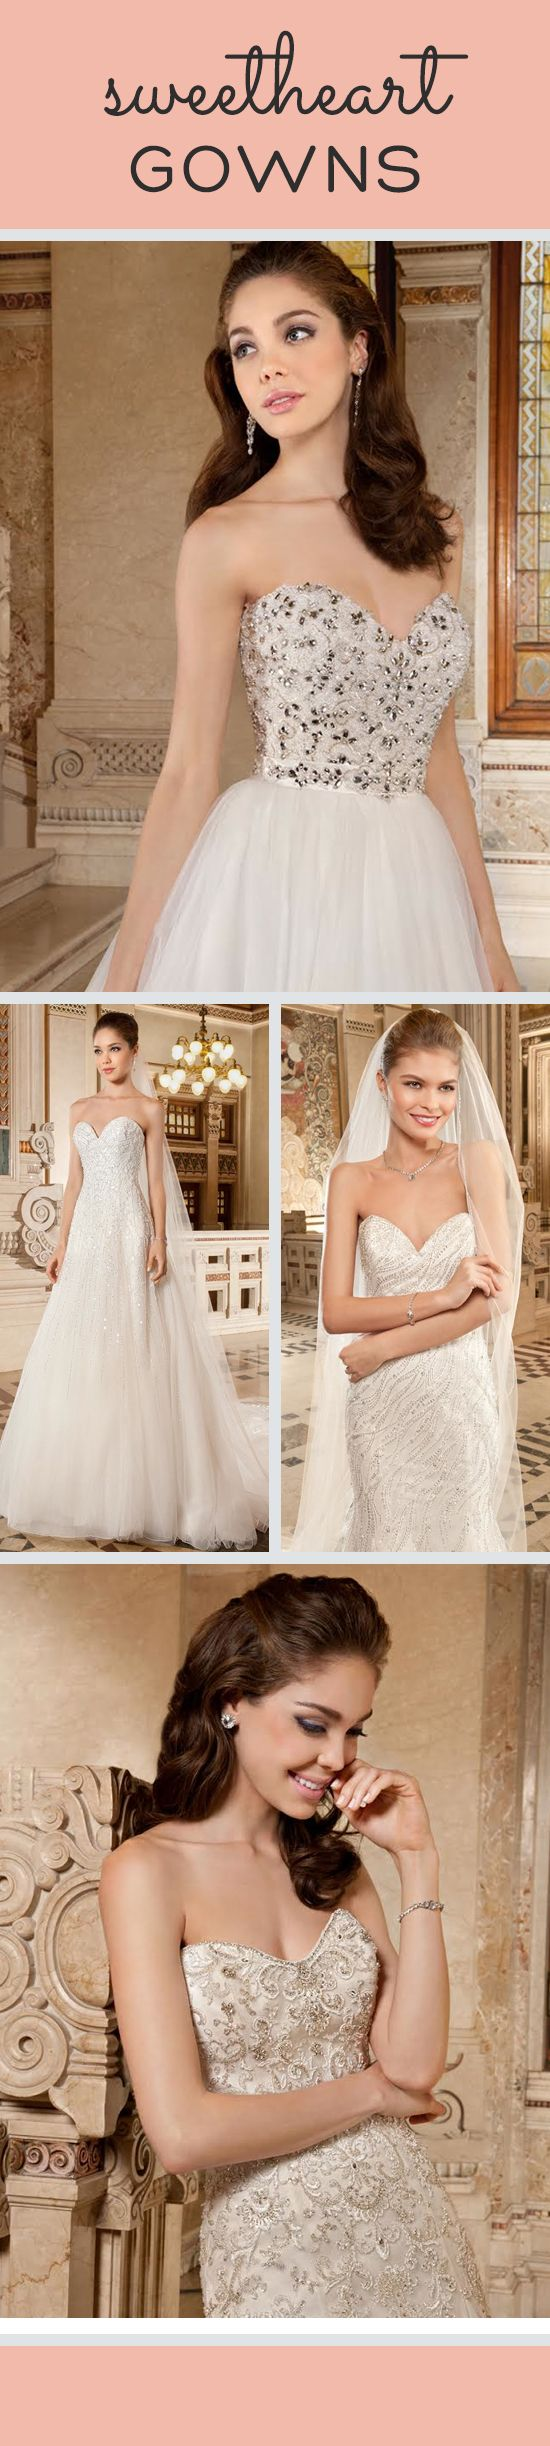 We are loving the gorgeous details on these #sweetheart gowns from @demetriosbride